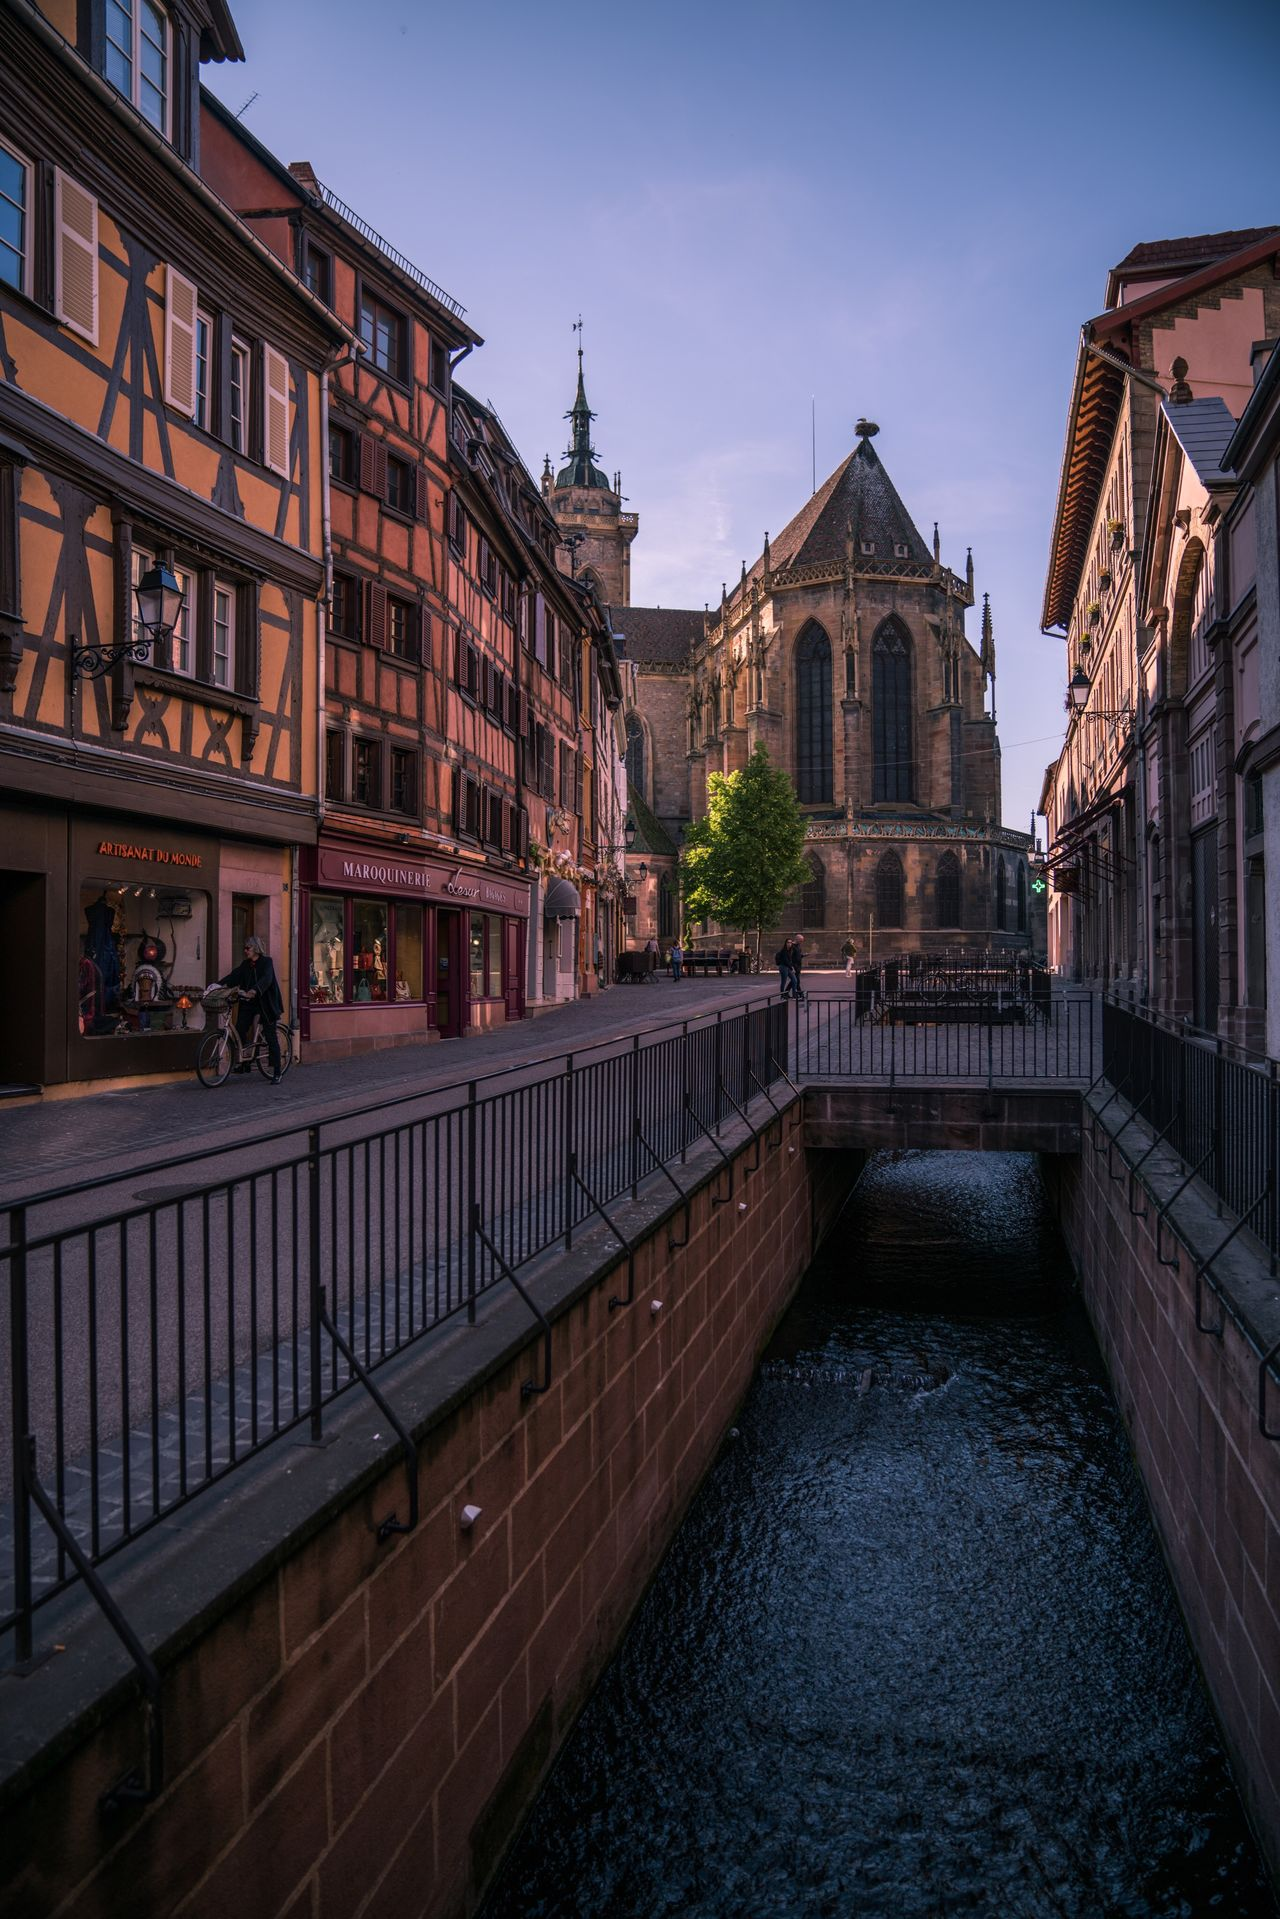 Colmar. Architecture_collection Dusk Travel Destinations Travel Traveling Travel Photography Alsace Vive La France France Colmar Colmar, Alsace, France Colors Colorful Church Architecture Multi Colored Canal Architecture Built Structure Religion Place Of Worship Cityscape Canals Building Exterior Outdoors